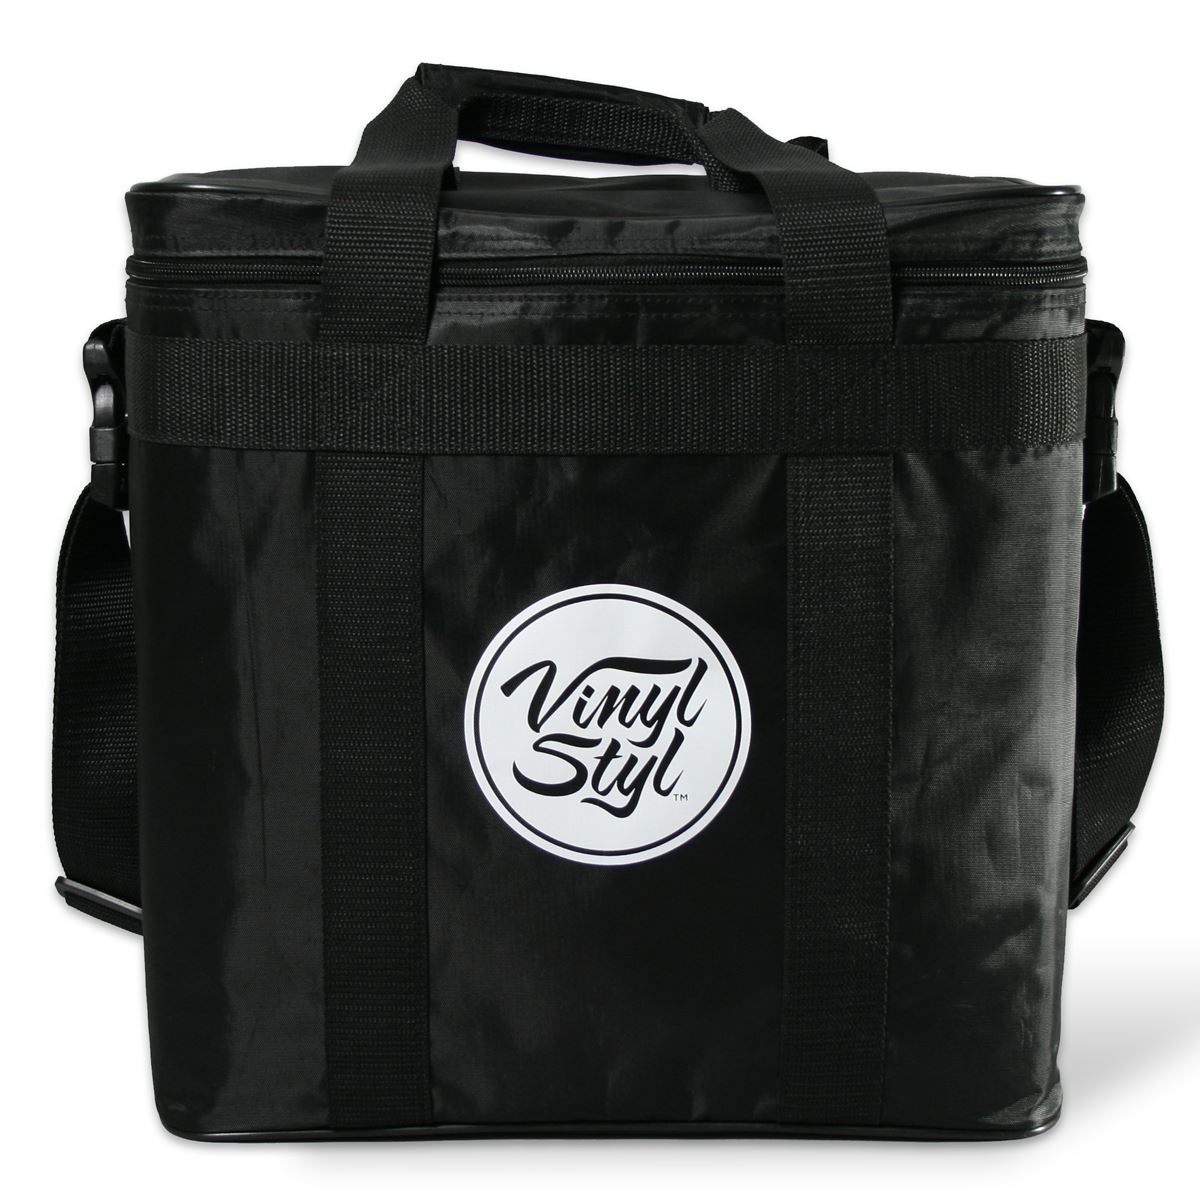 Vinyl styl padded carrying case  - Sanborns